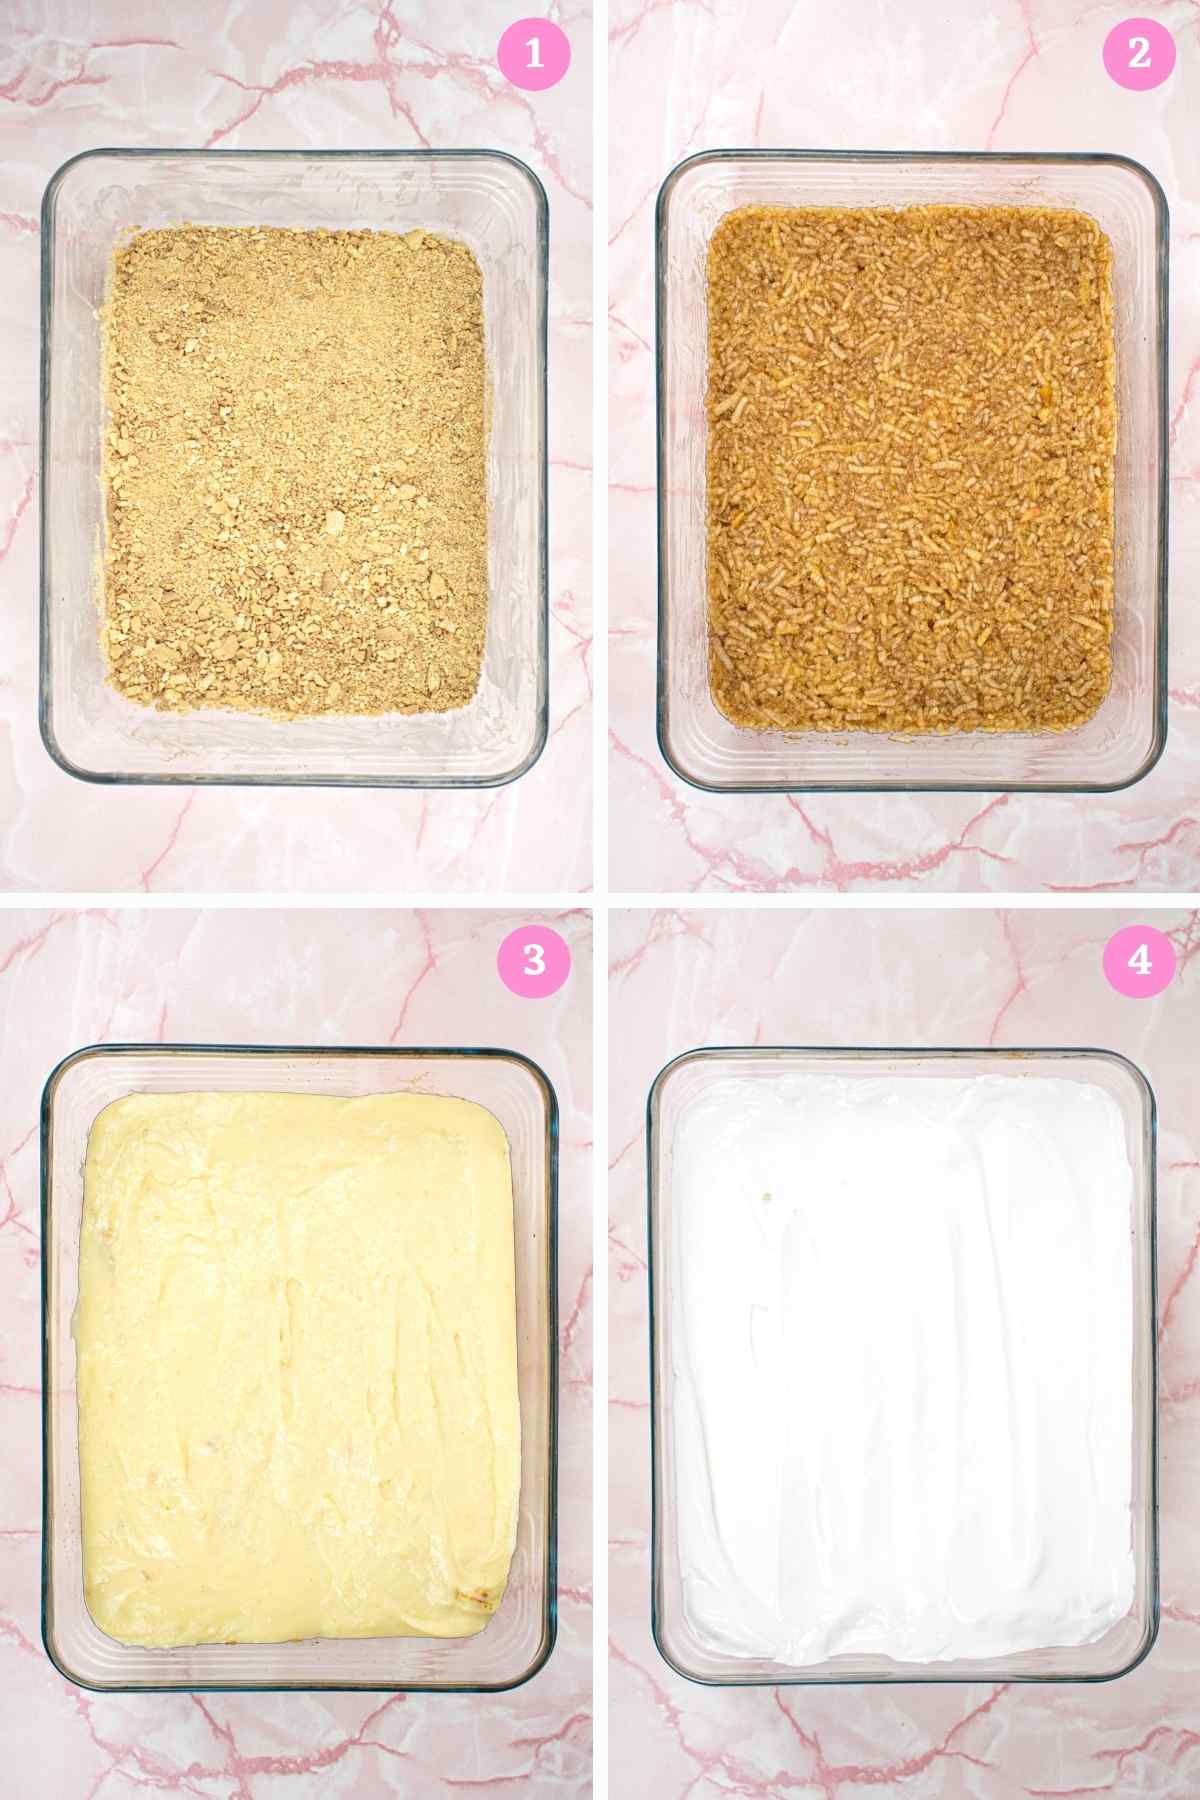 Collage of recipe steps with 4 images of baking tray